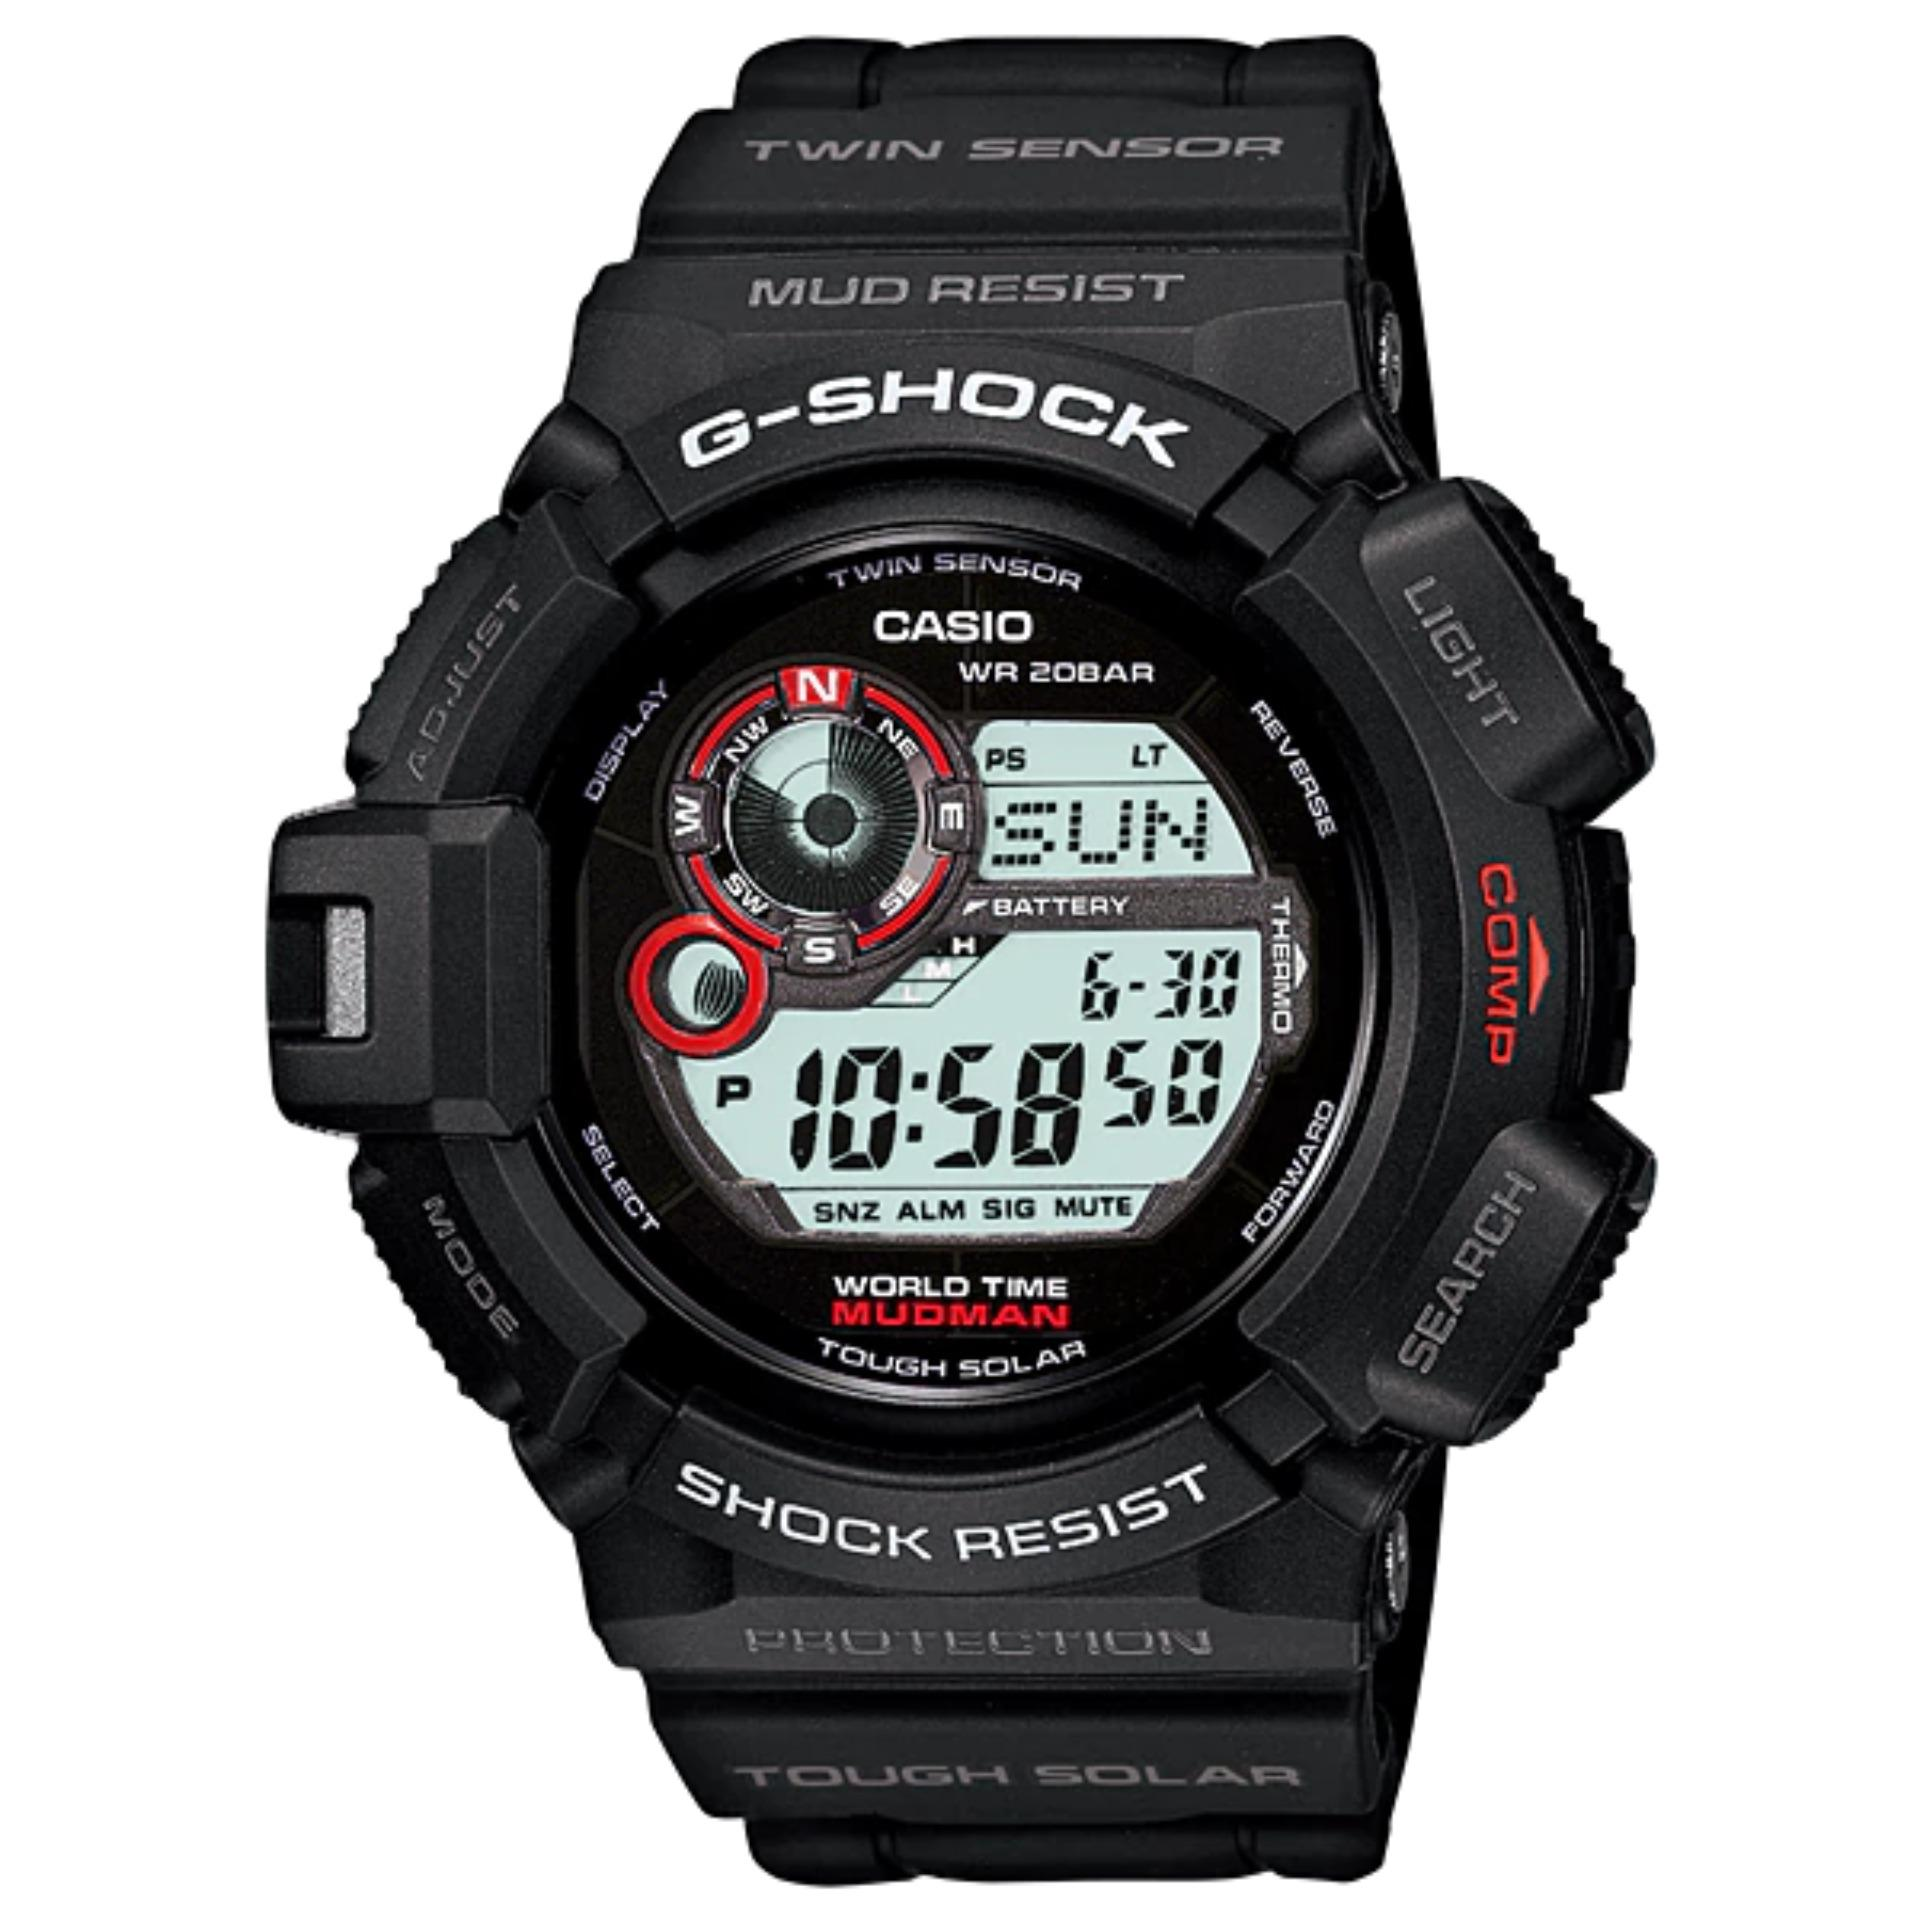 Review Casio G Shock G 9300 1Dr Jam Tangan Pria Digital Black Casio G Shock